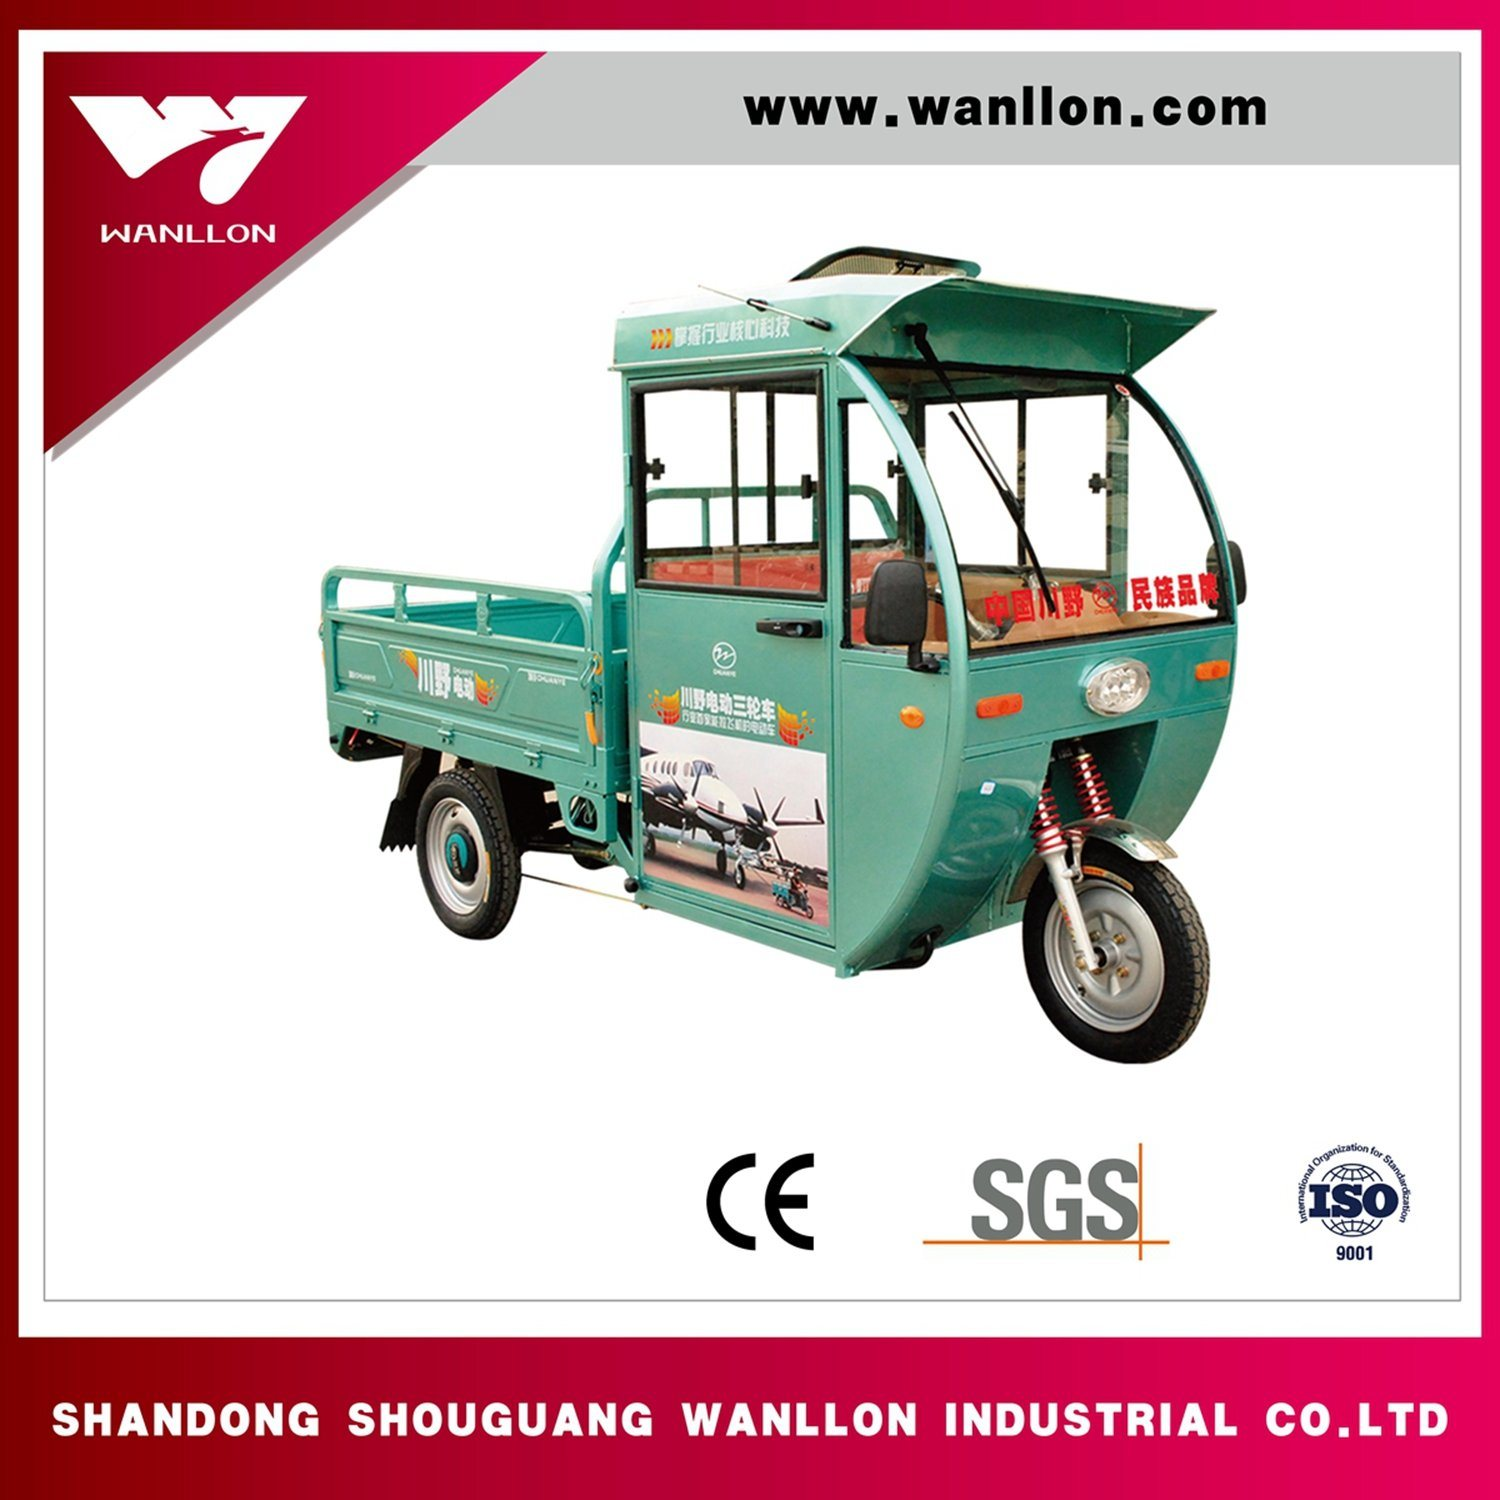 China isoccc certification electric gasoline hybrid truck isoccc certification electric gasoline hybrid truck tricycle xflitez Image collections